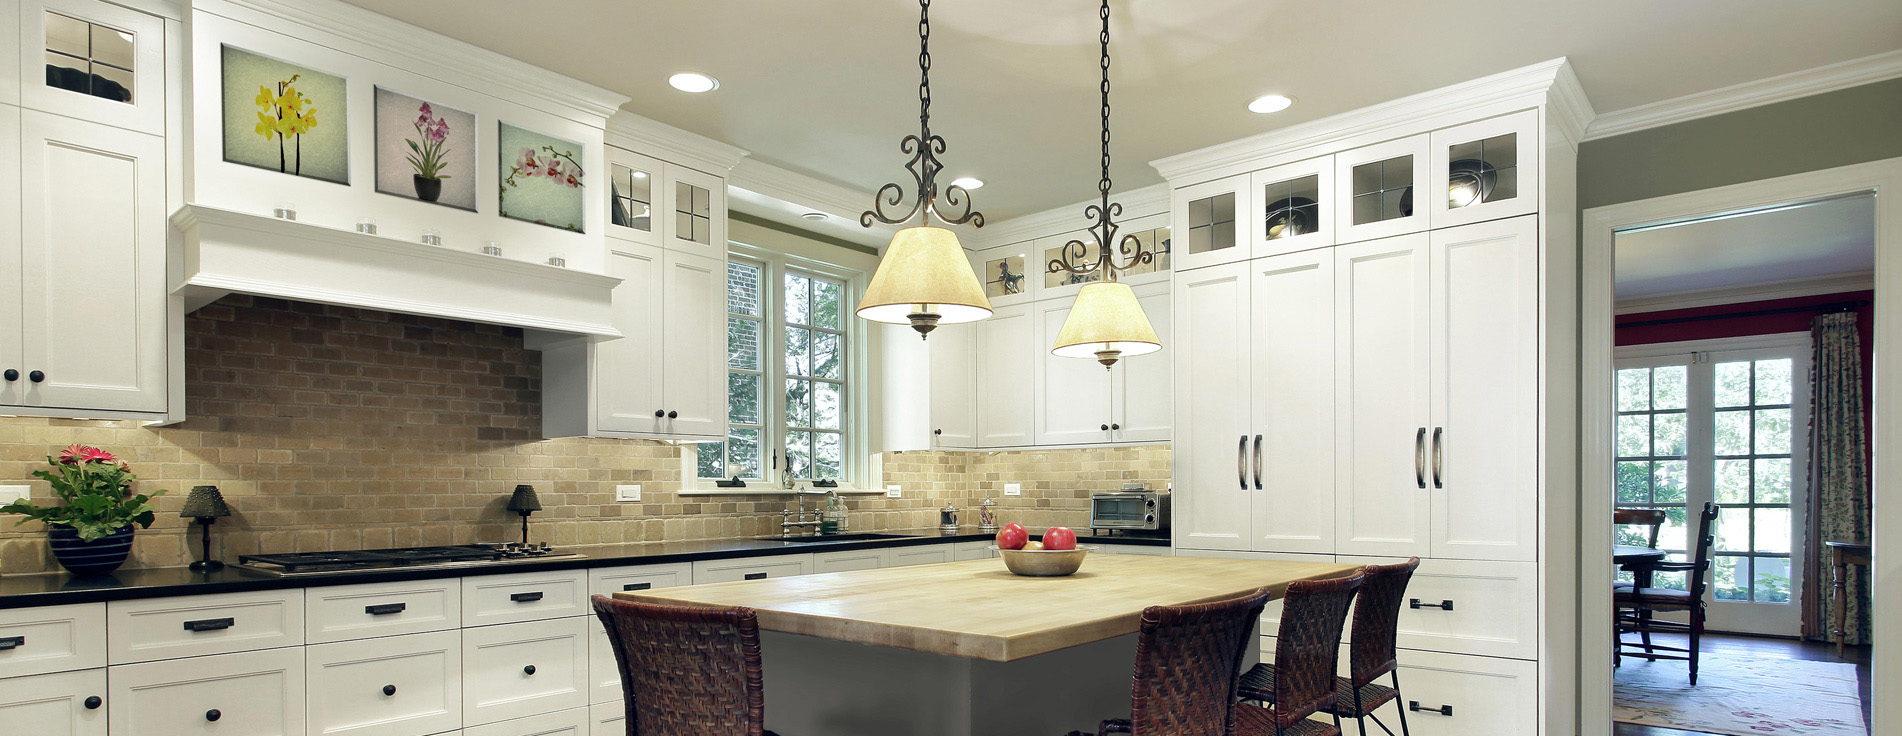 superior Kitchen Remodeling Suffolk Va #6: Interior Remodeling Portfolio